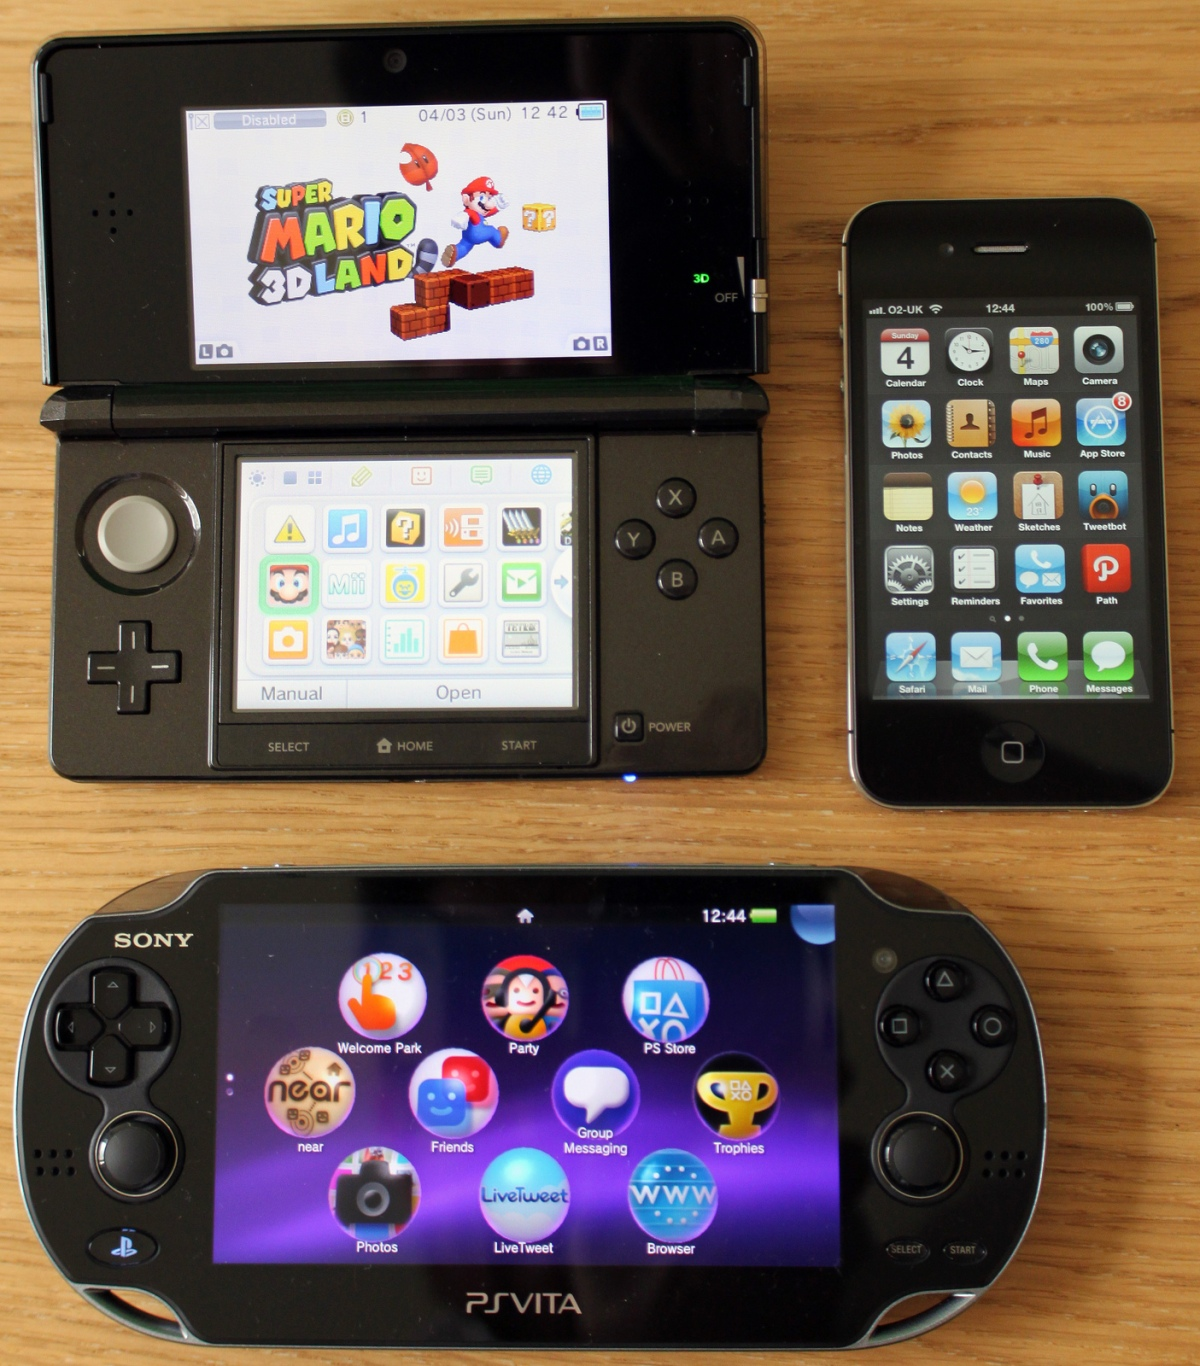 EA Explains Why It Brings Games To Smart Devices Instead Of Nintendo3DS